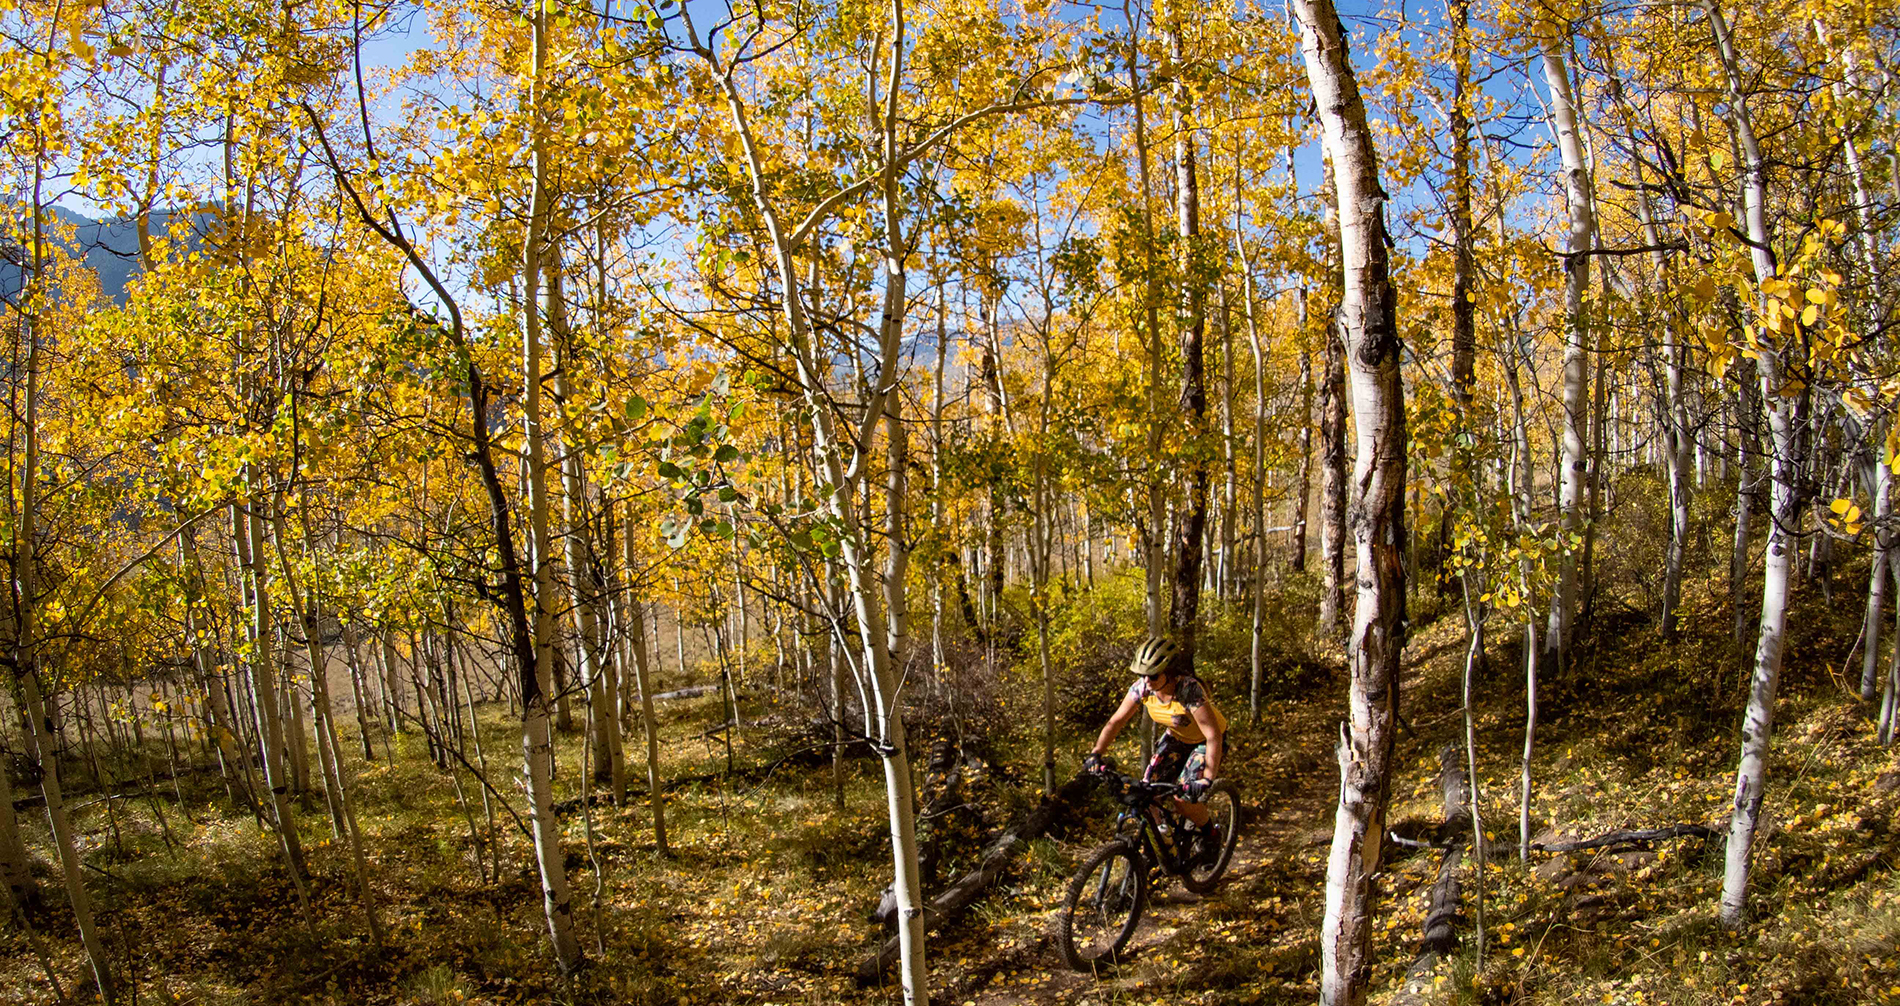 Visit Blister Headquarters at Elevation Hotel in Crested Butte